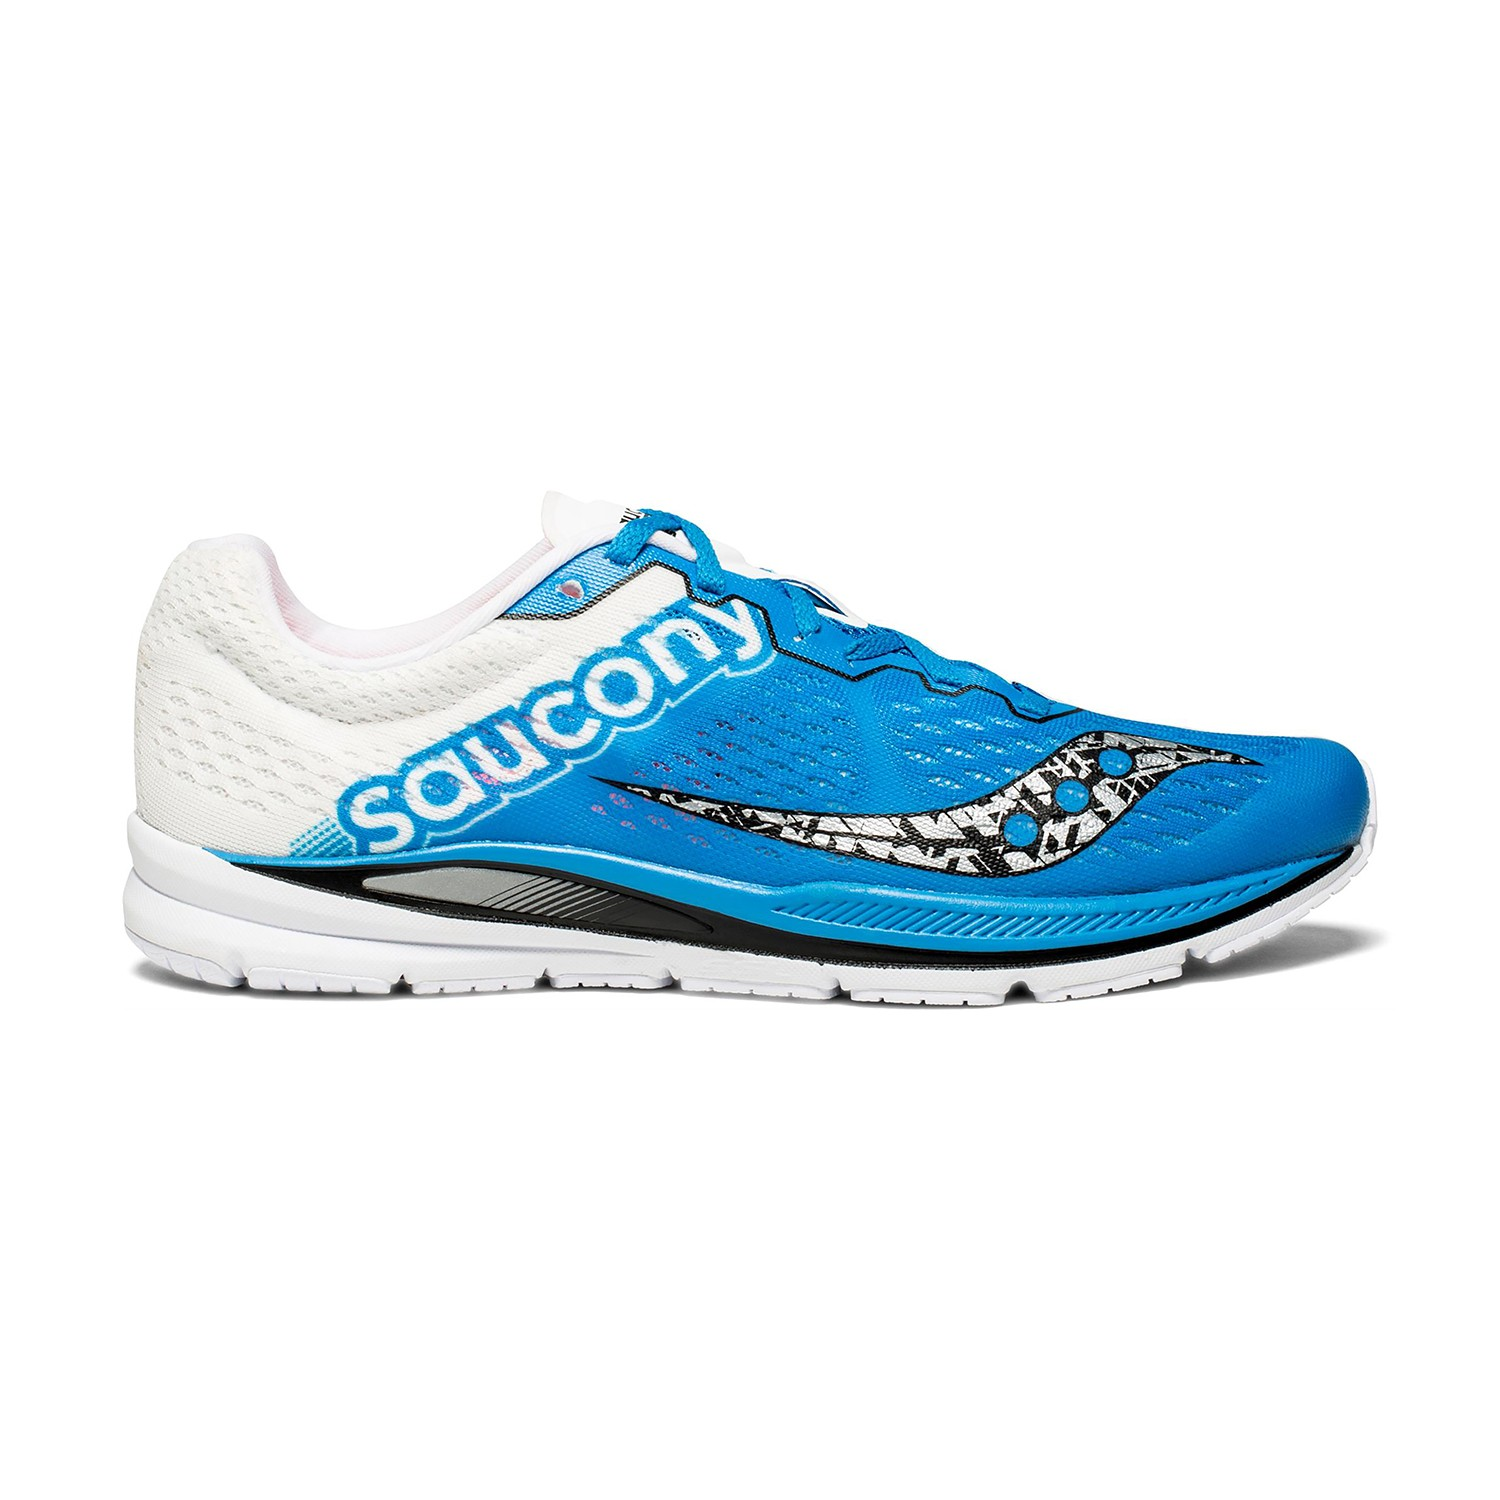 Saucony Men's Fastwitch 8 Running Shoe